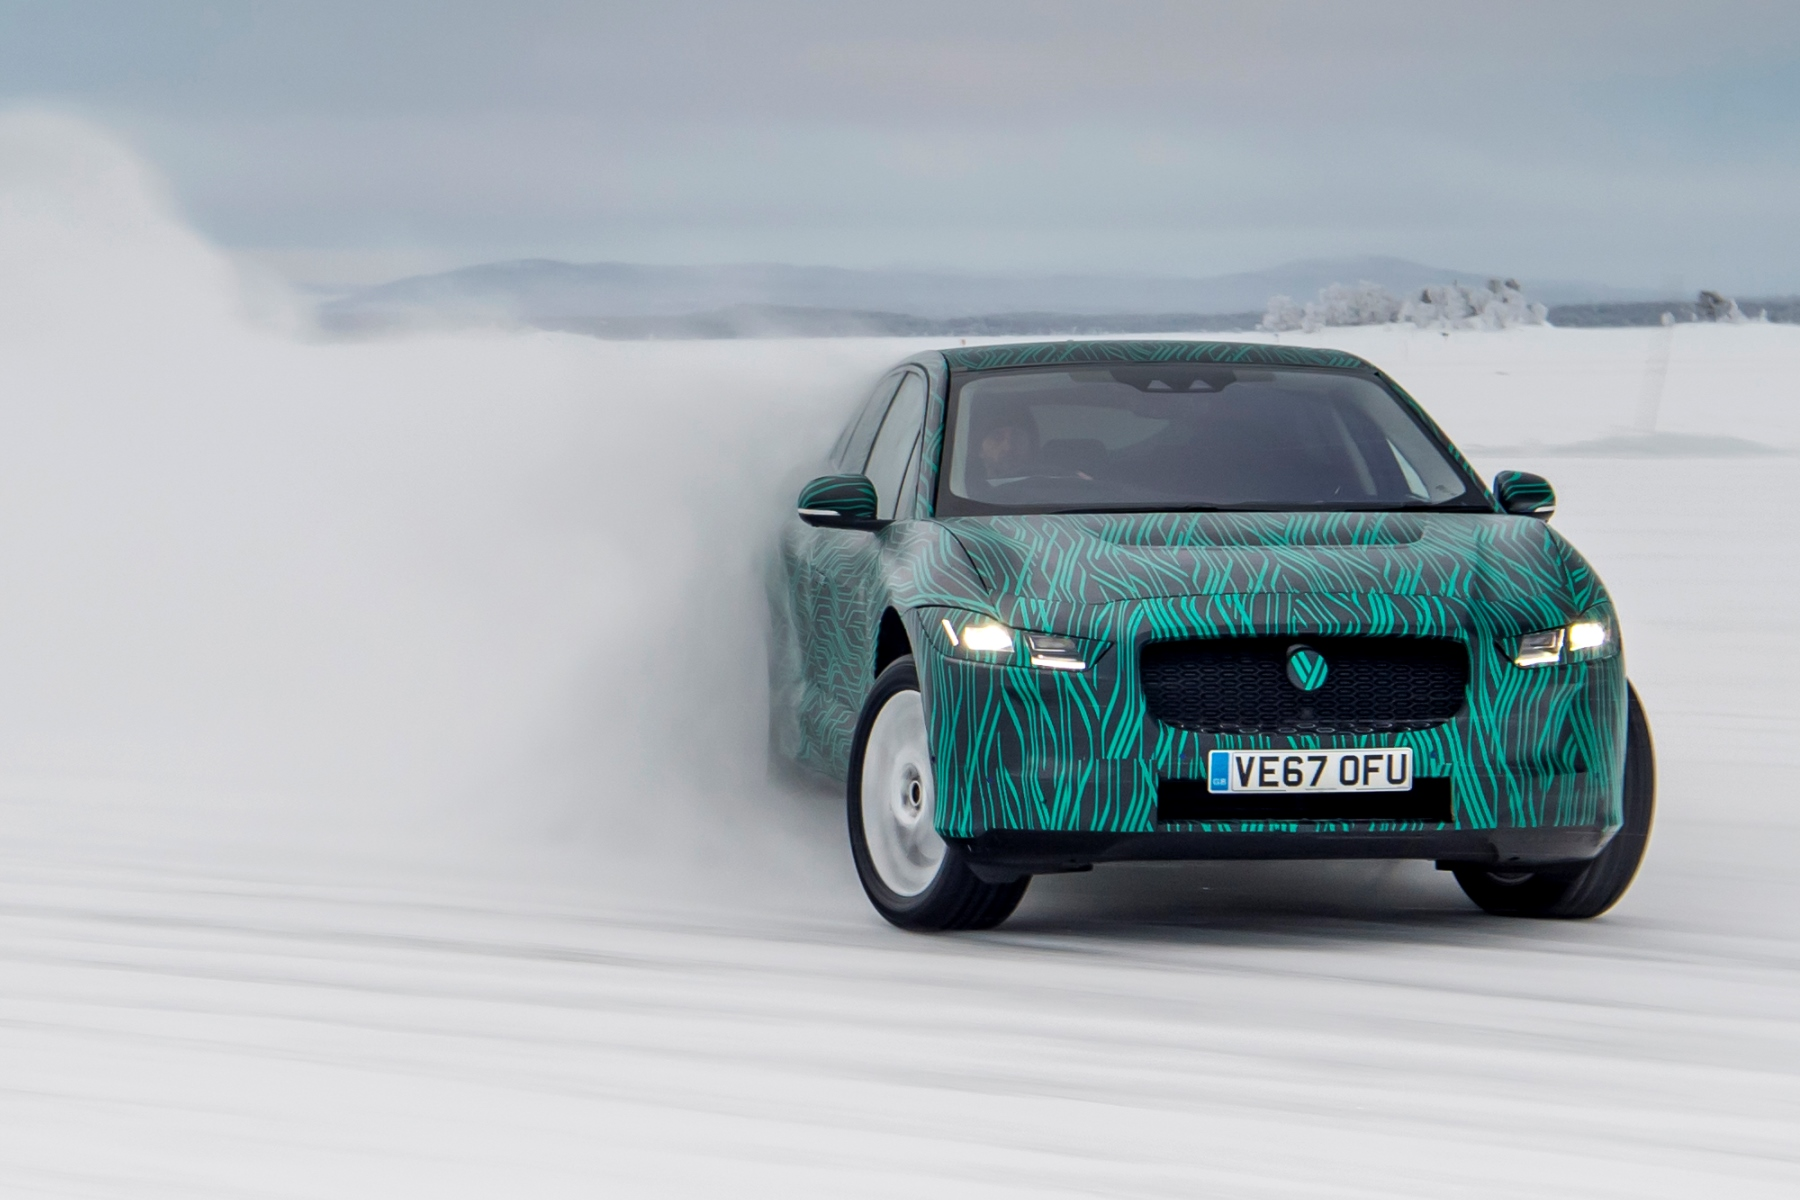 Jaguar I-PACE Electric Crossover To Be Unveiled Ahead of Schedule